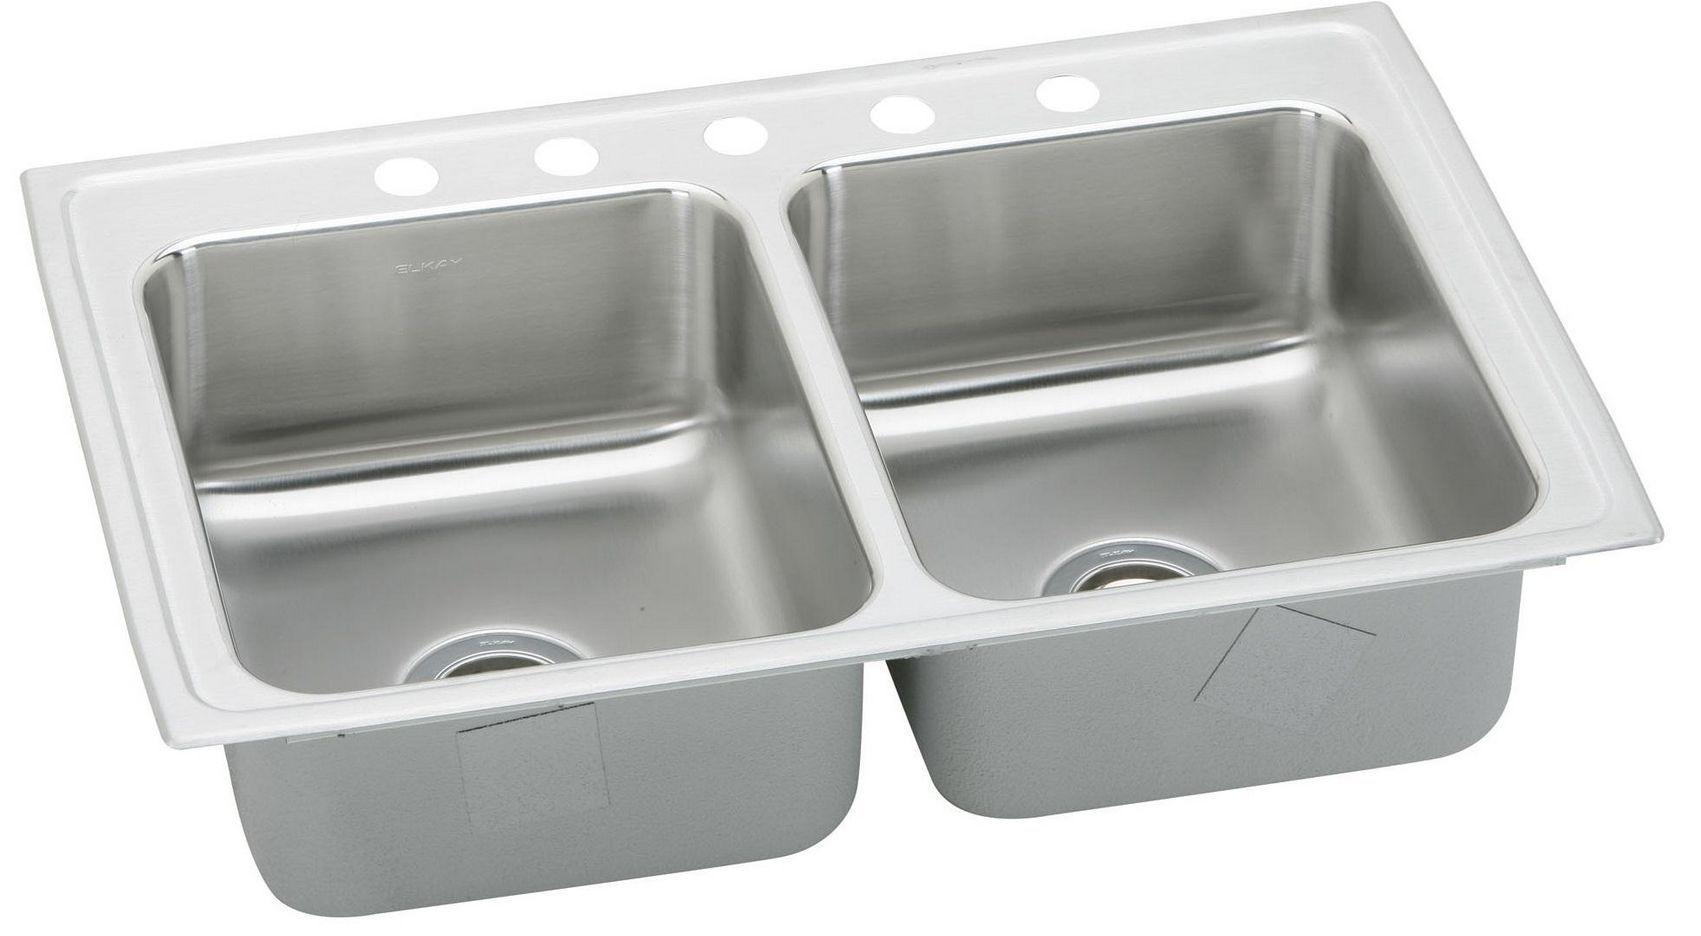 Elkay stainless steel sink against a white background.